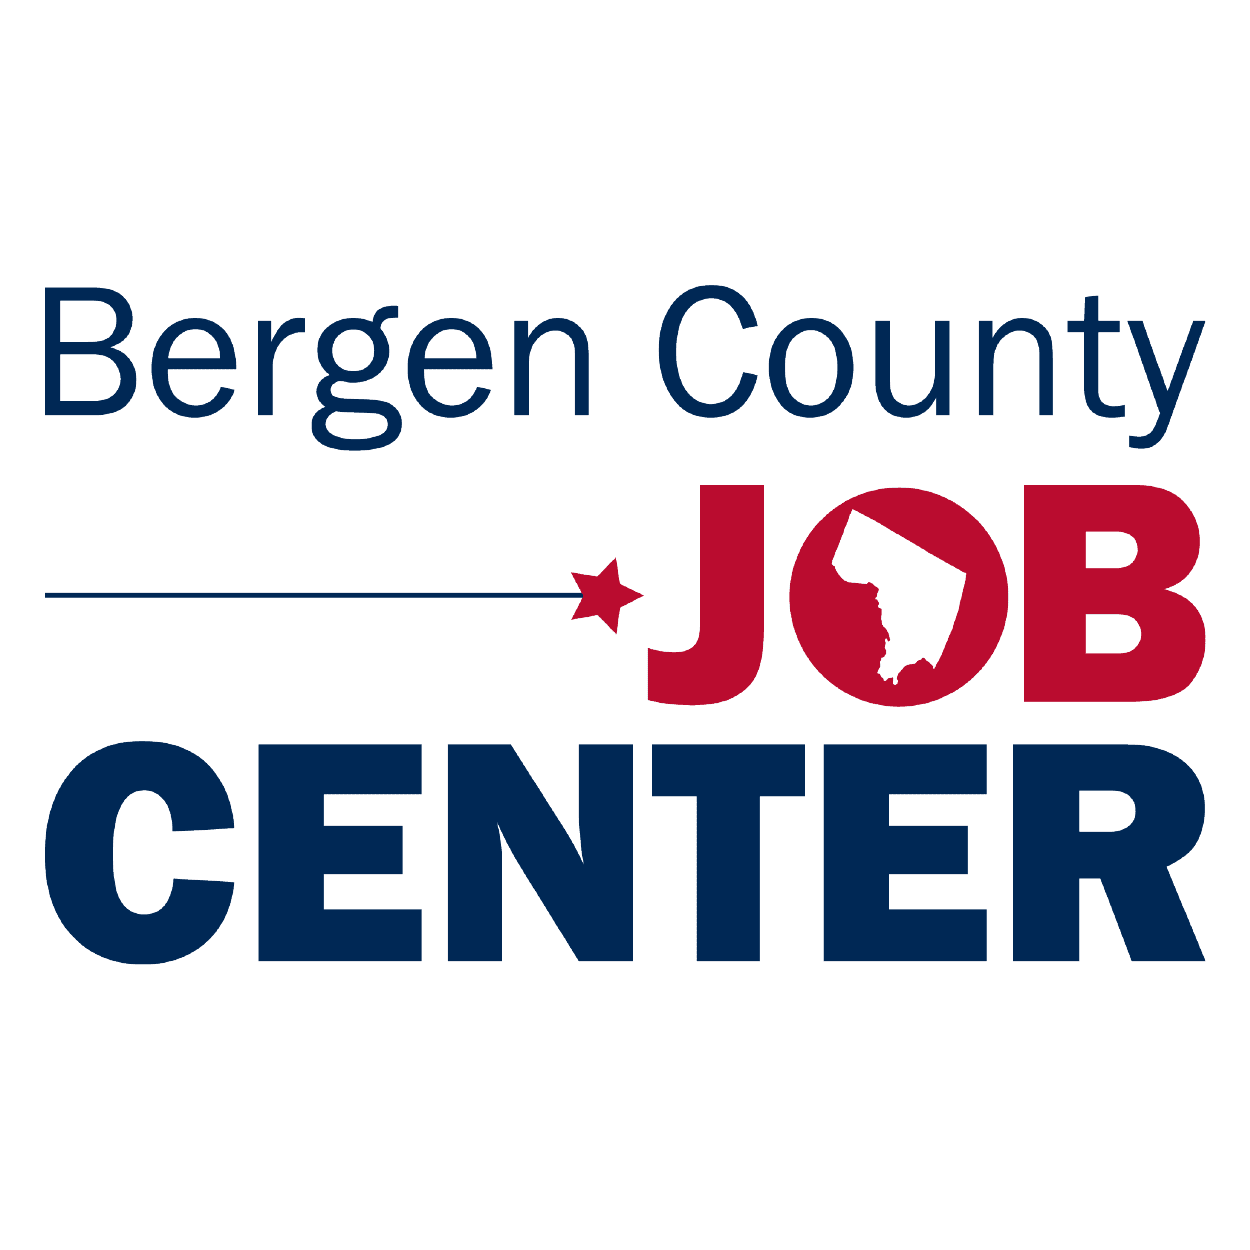 Bergen County Job Center